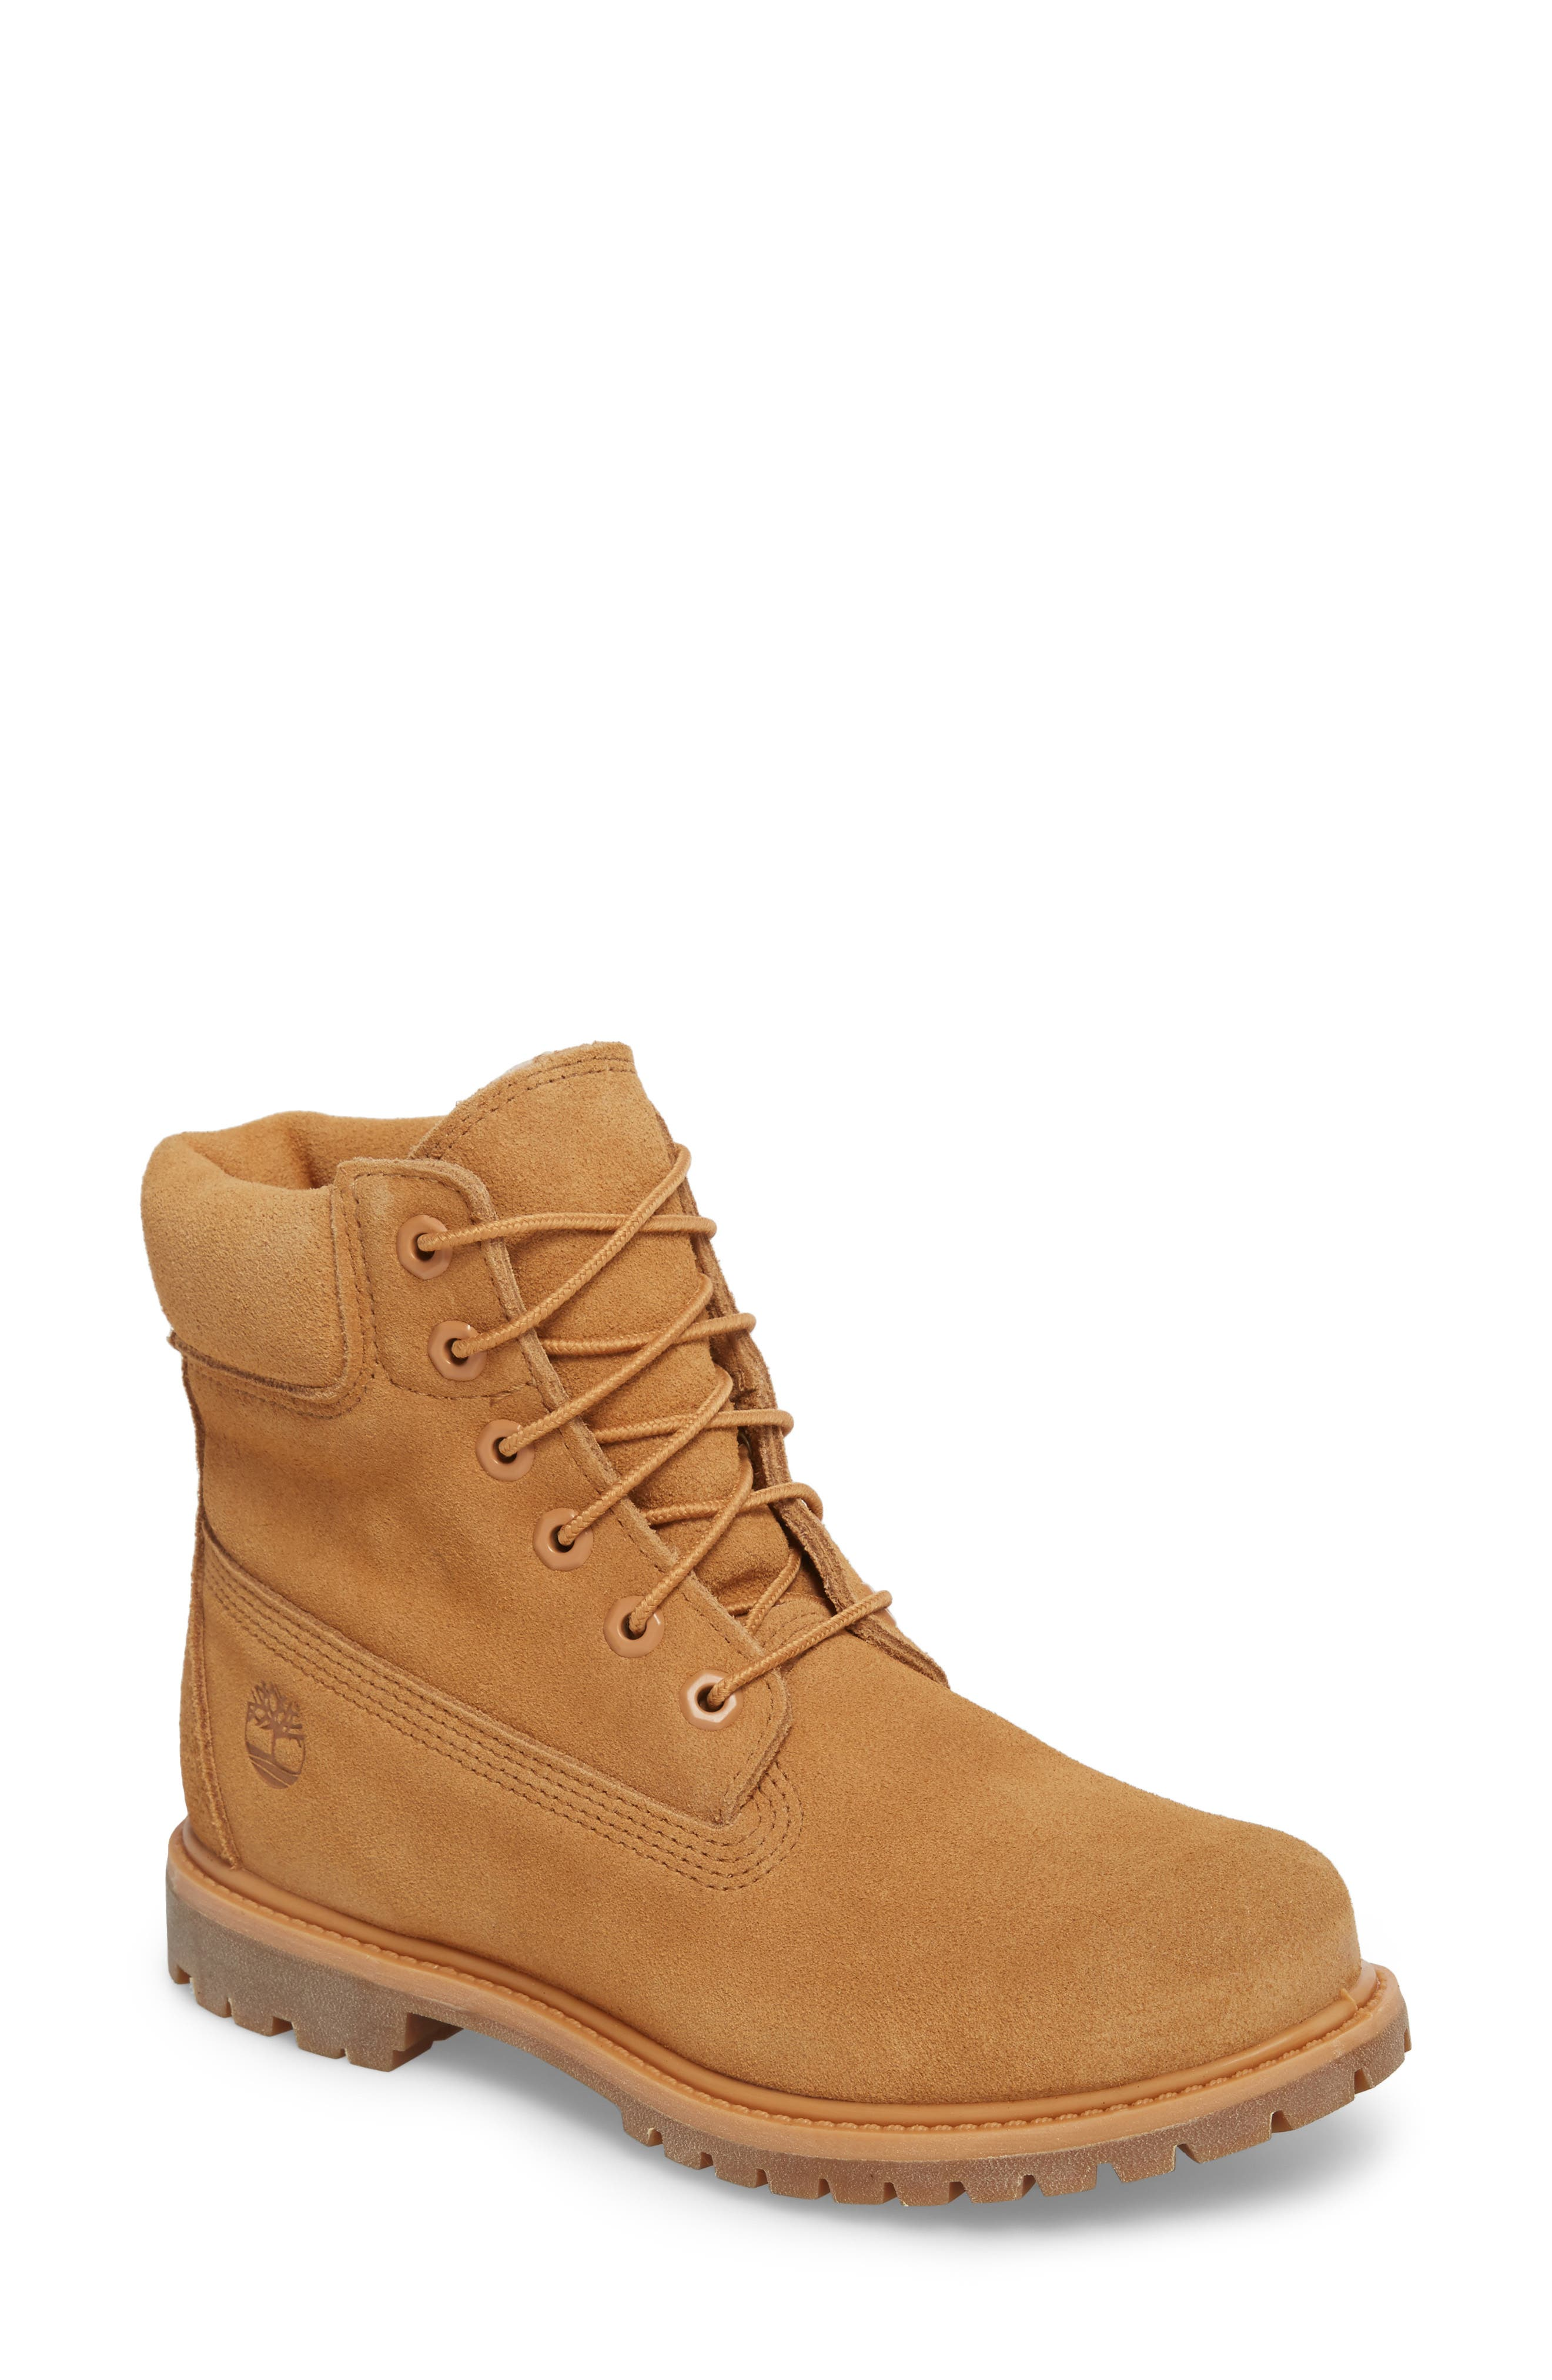 6 Inch Boot,                         Main,                         color, 230